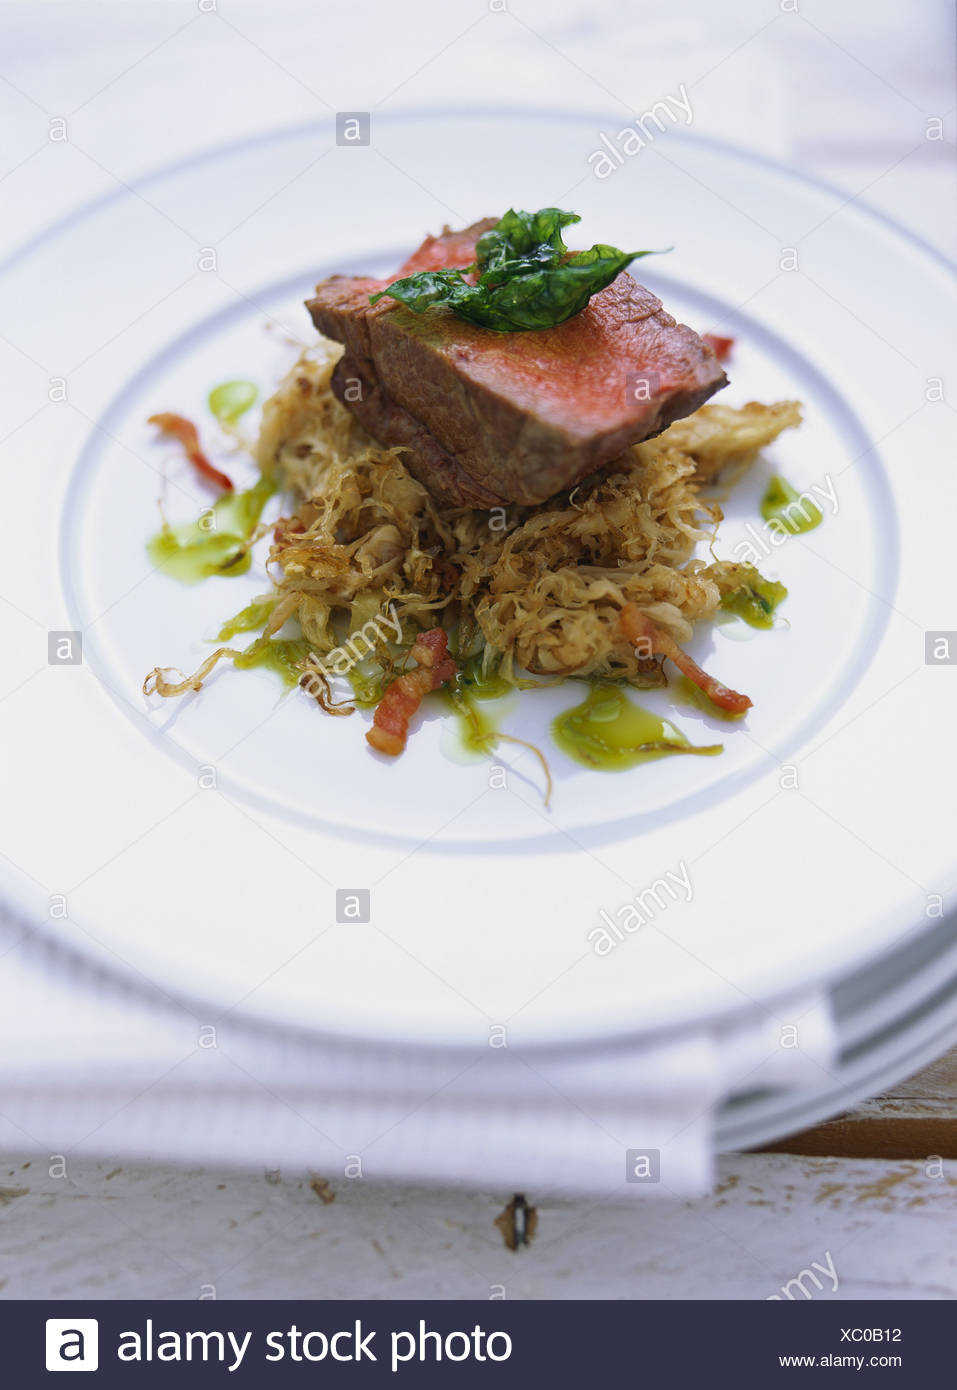 Medium-rare fillet of fattened ox on sauerkraut with grapes - Stock Image